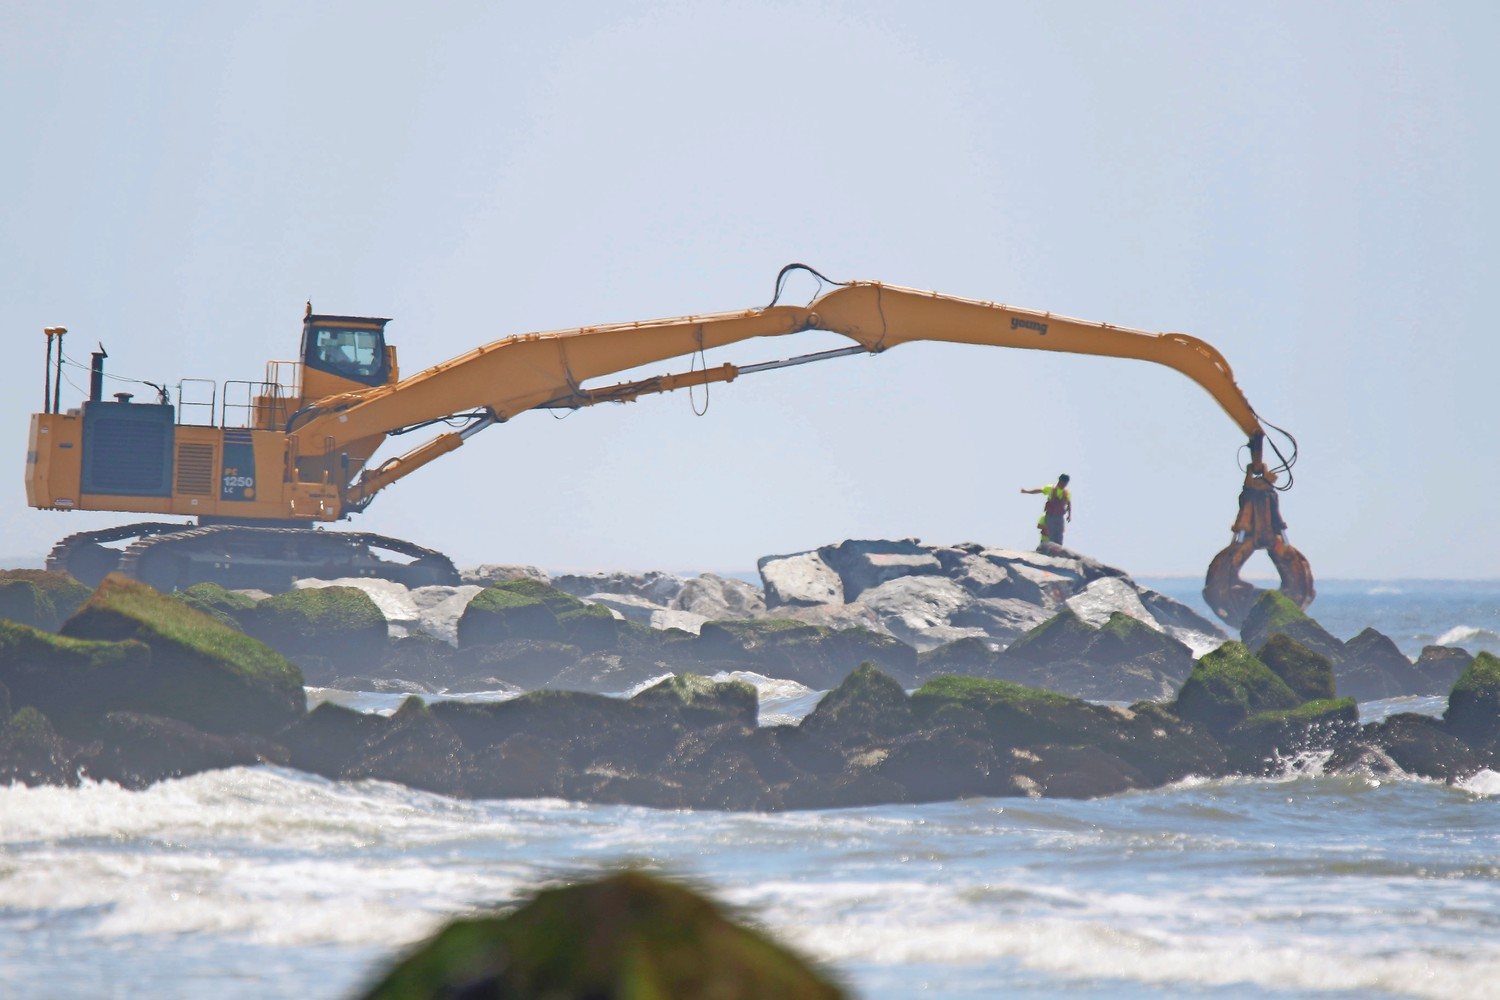 The Army Corps of Engineers recently completed work on 15 jetties in Long Beach.